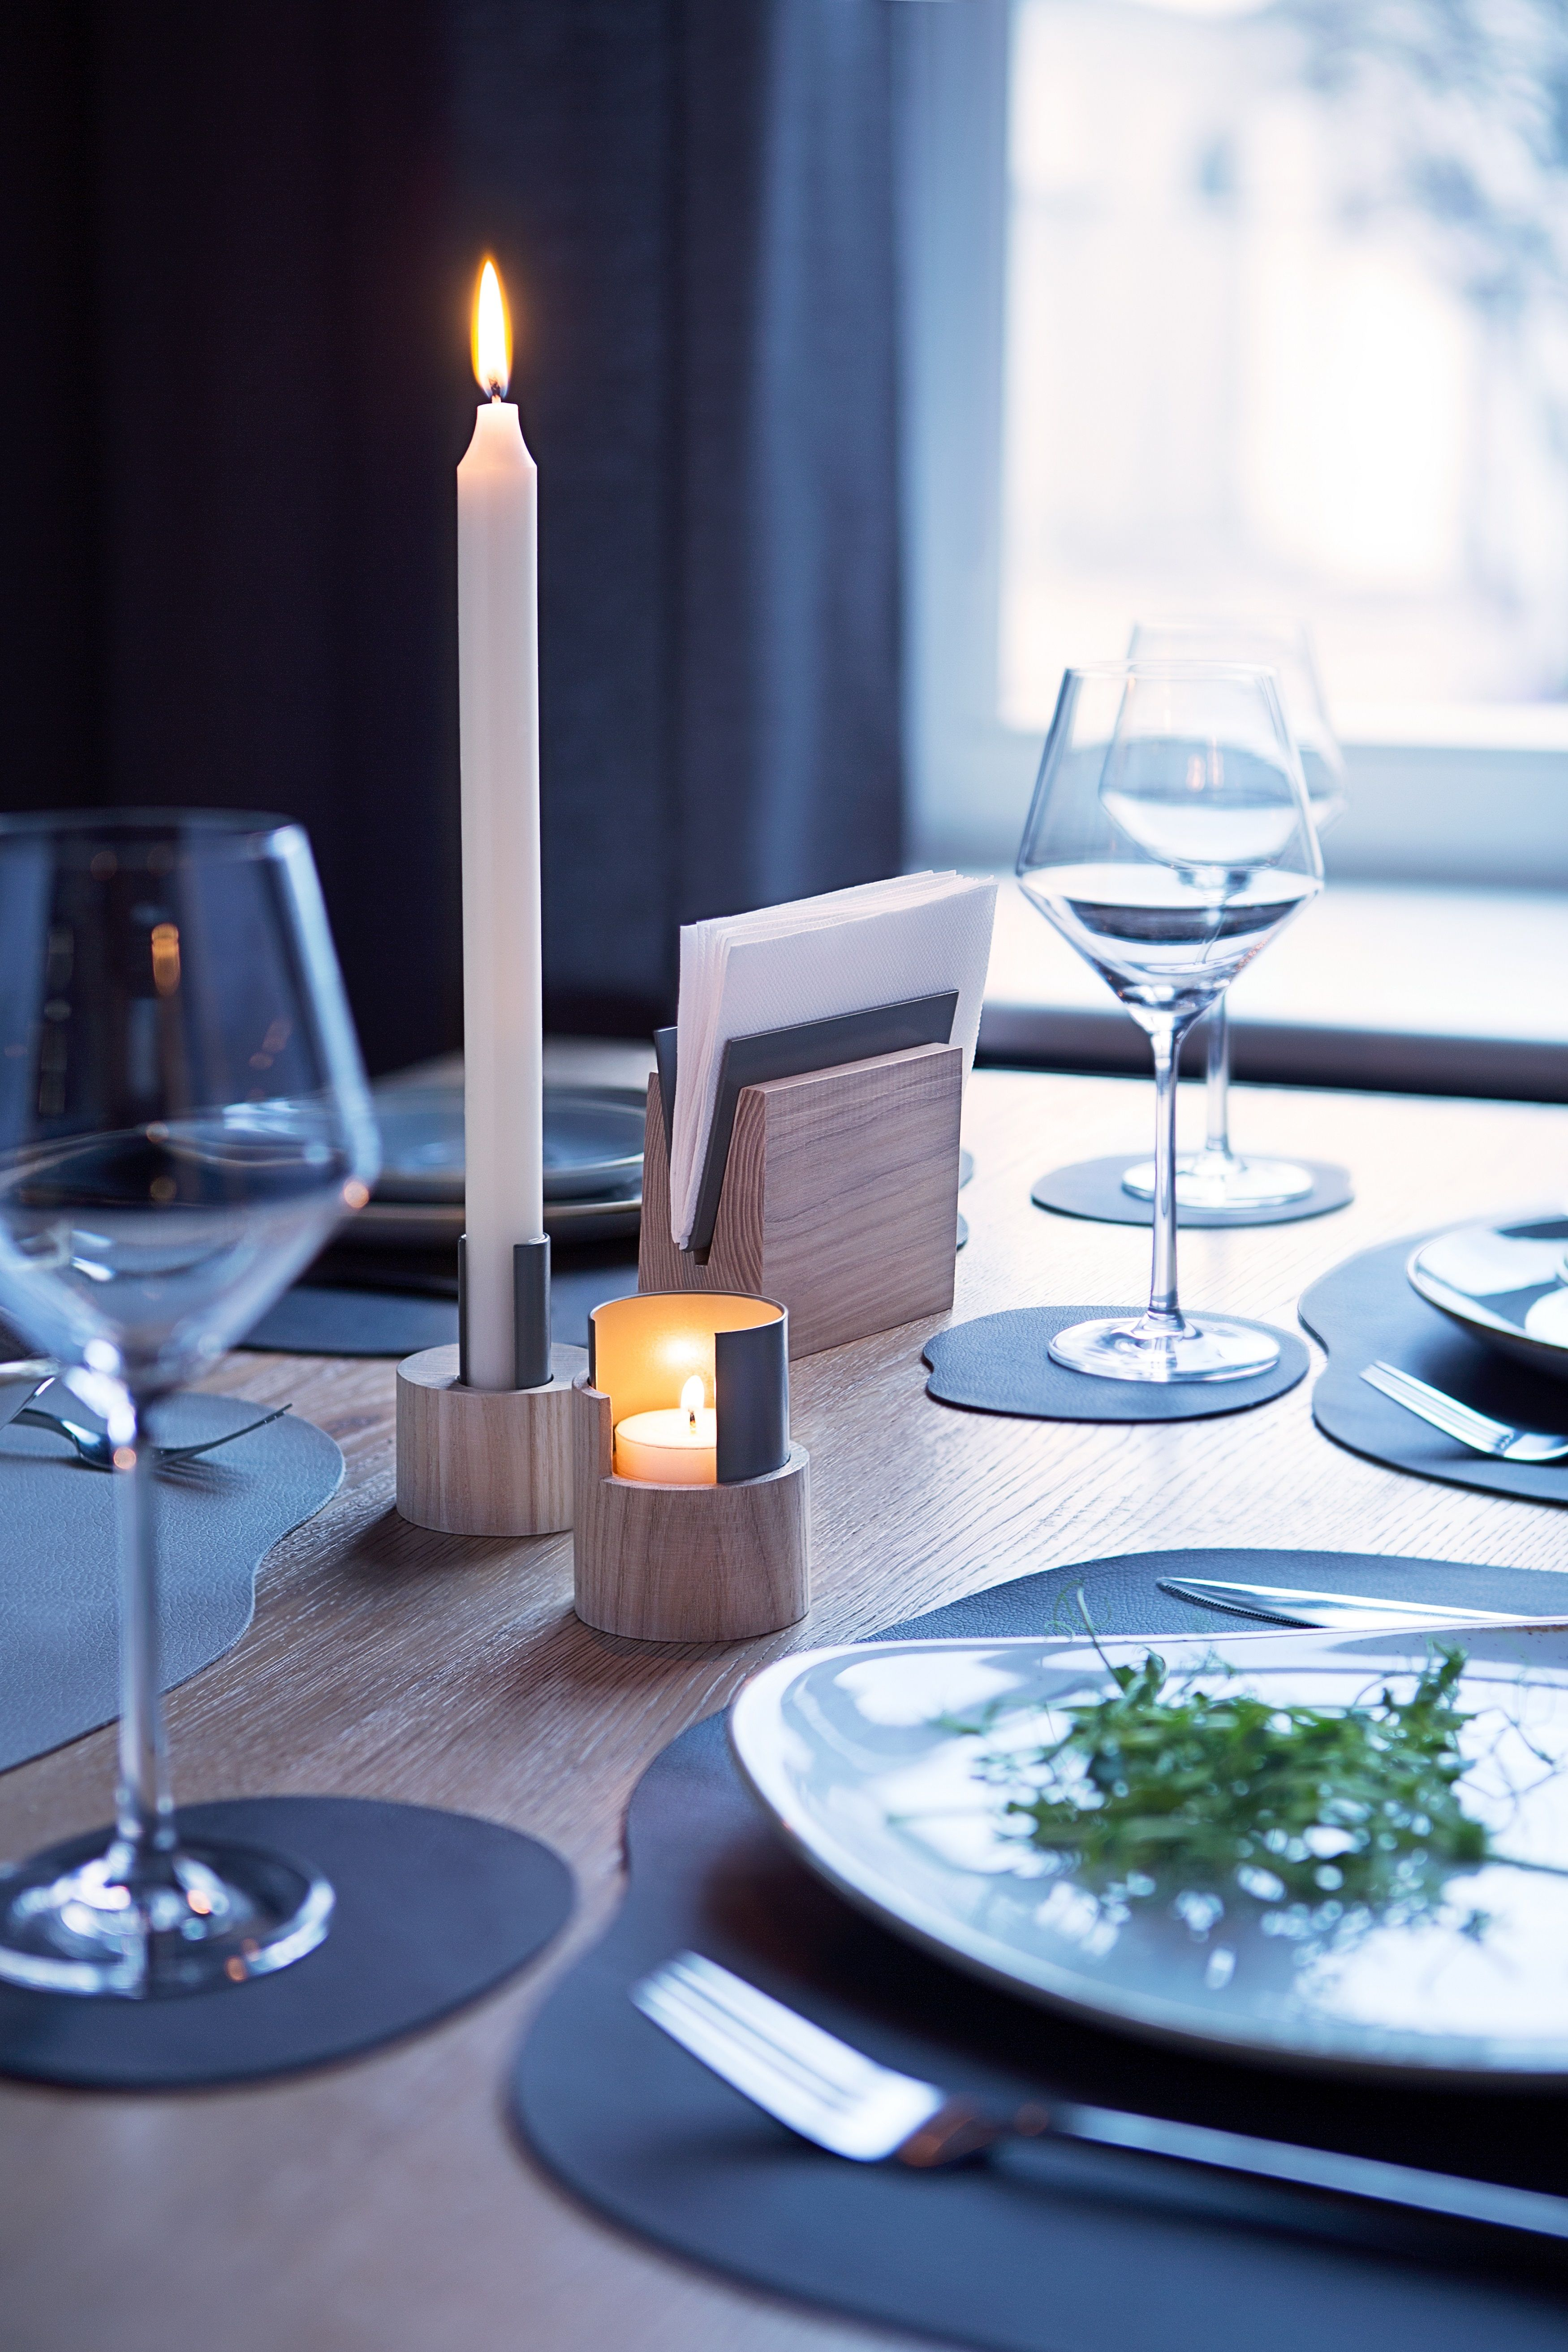 Incroyable Restaurant Table Setting. Table Mats And Candle Holders.